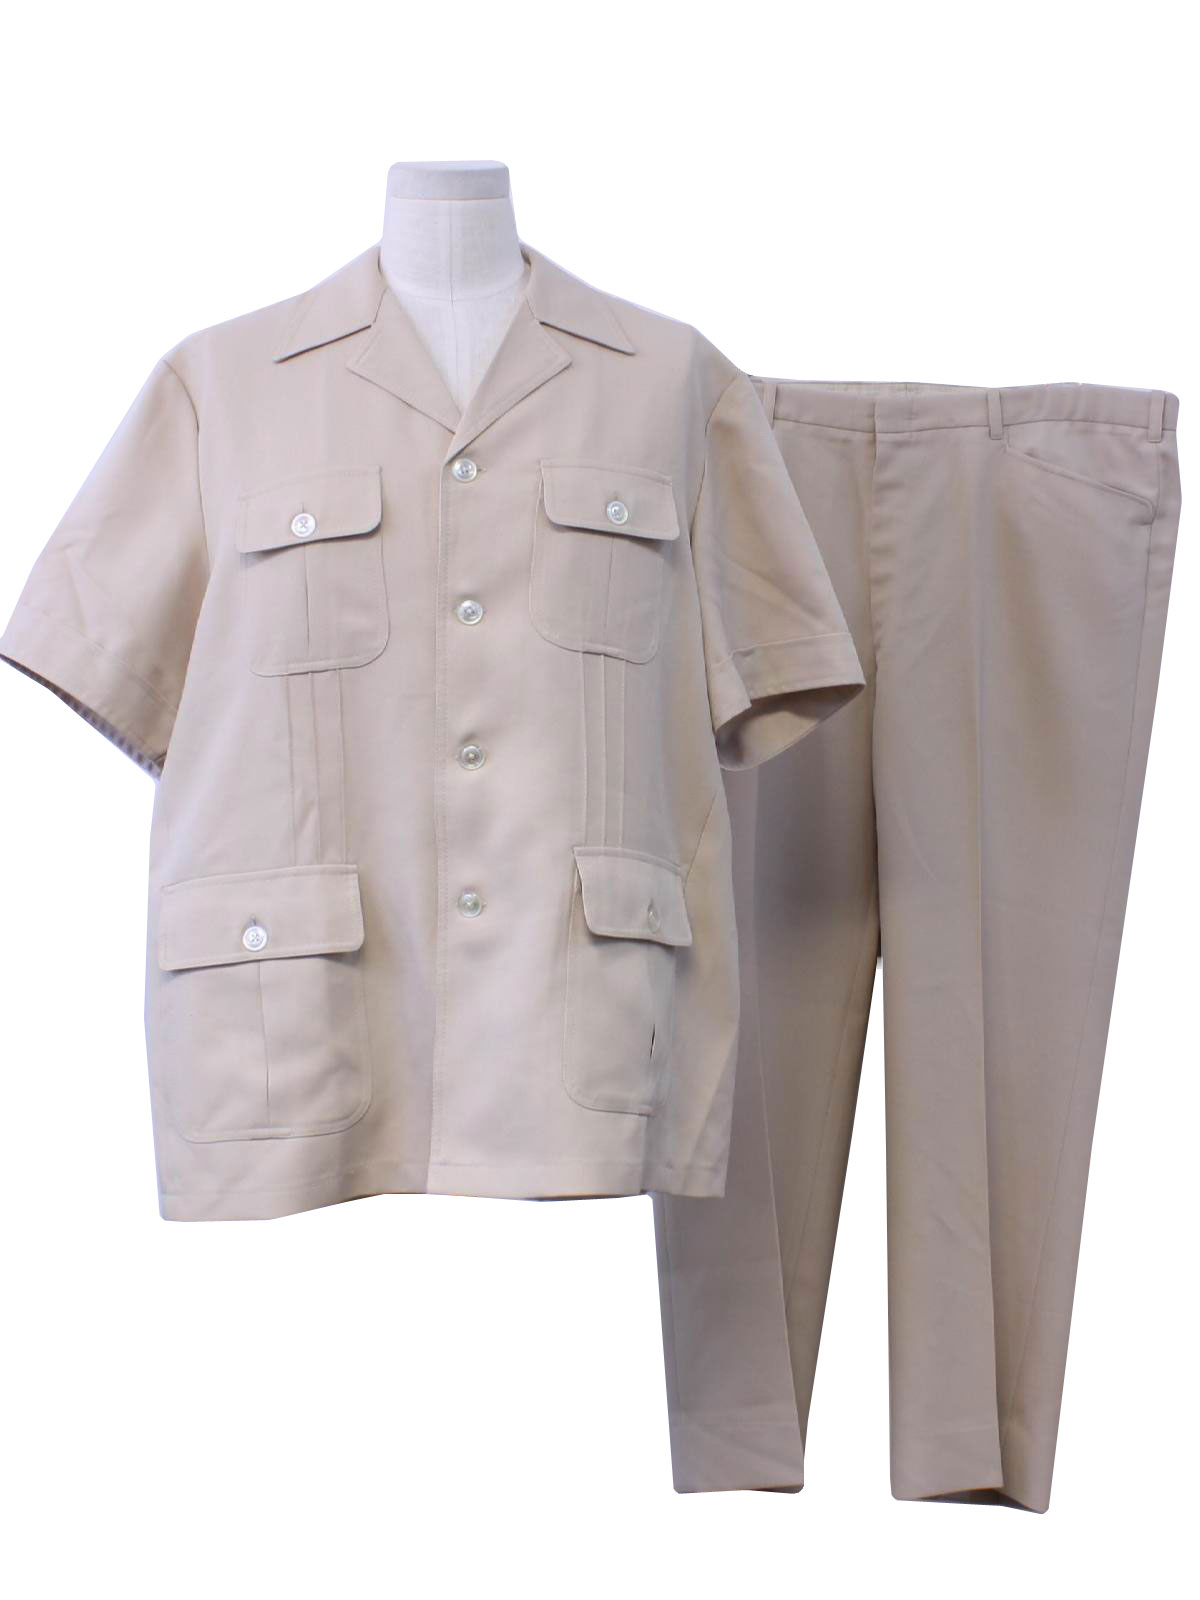 1980s Vintage Leisure Suit Early 80s No Label Mens Two